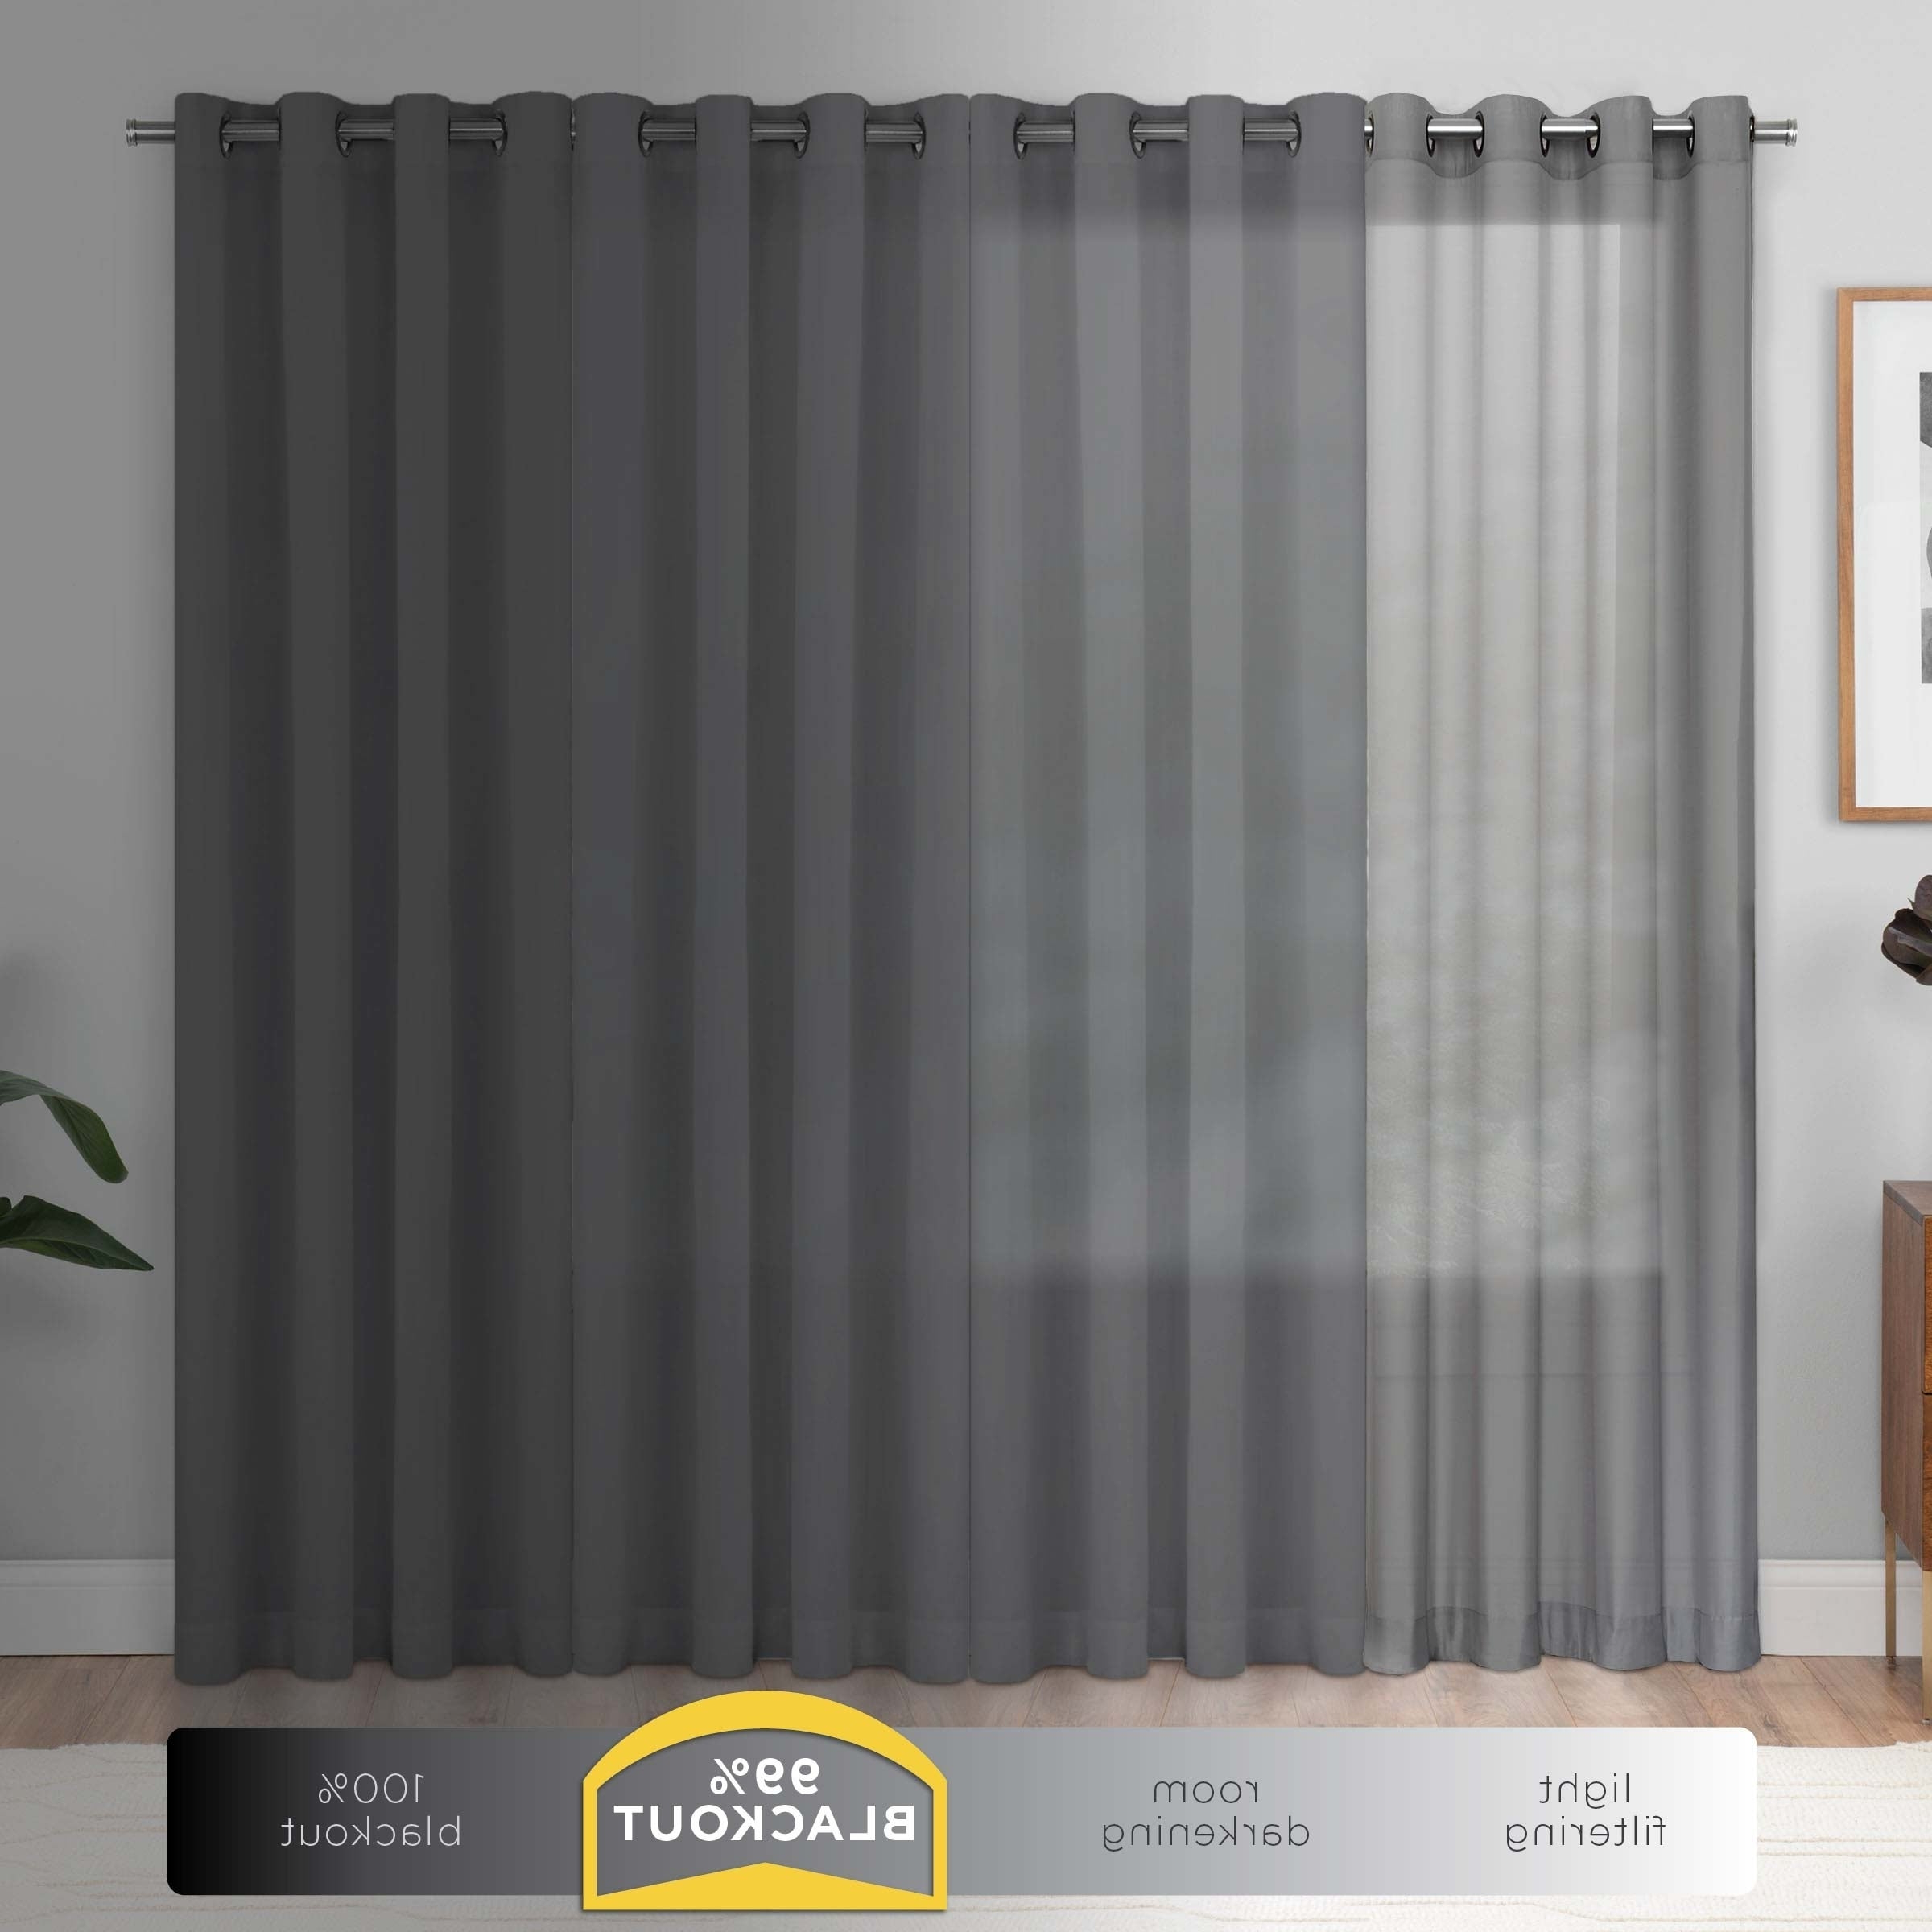 Best And Newest Eclipse Caprese Thermalayer Blackout Window Curtain Regarding Eclipse Caprese Thermalayer Blackout Window Curtains (View 3 of 20)